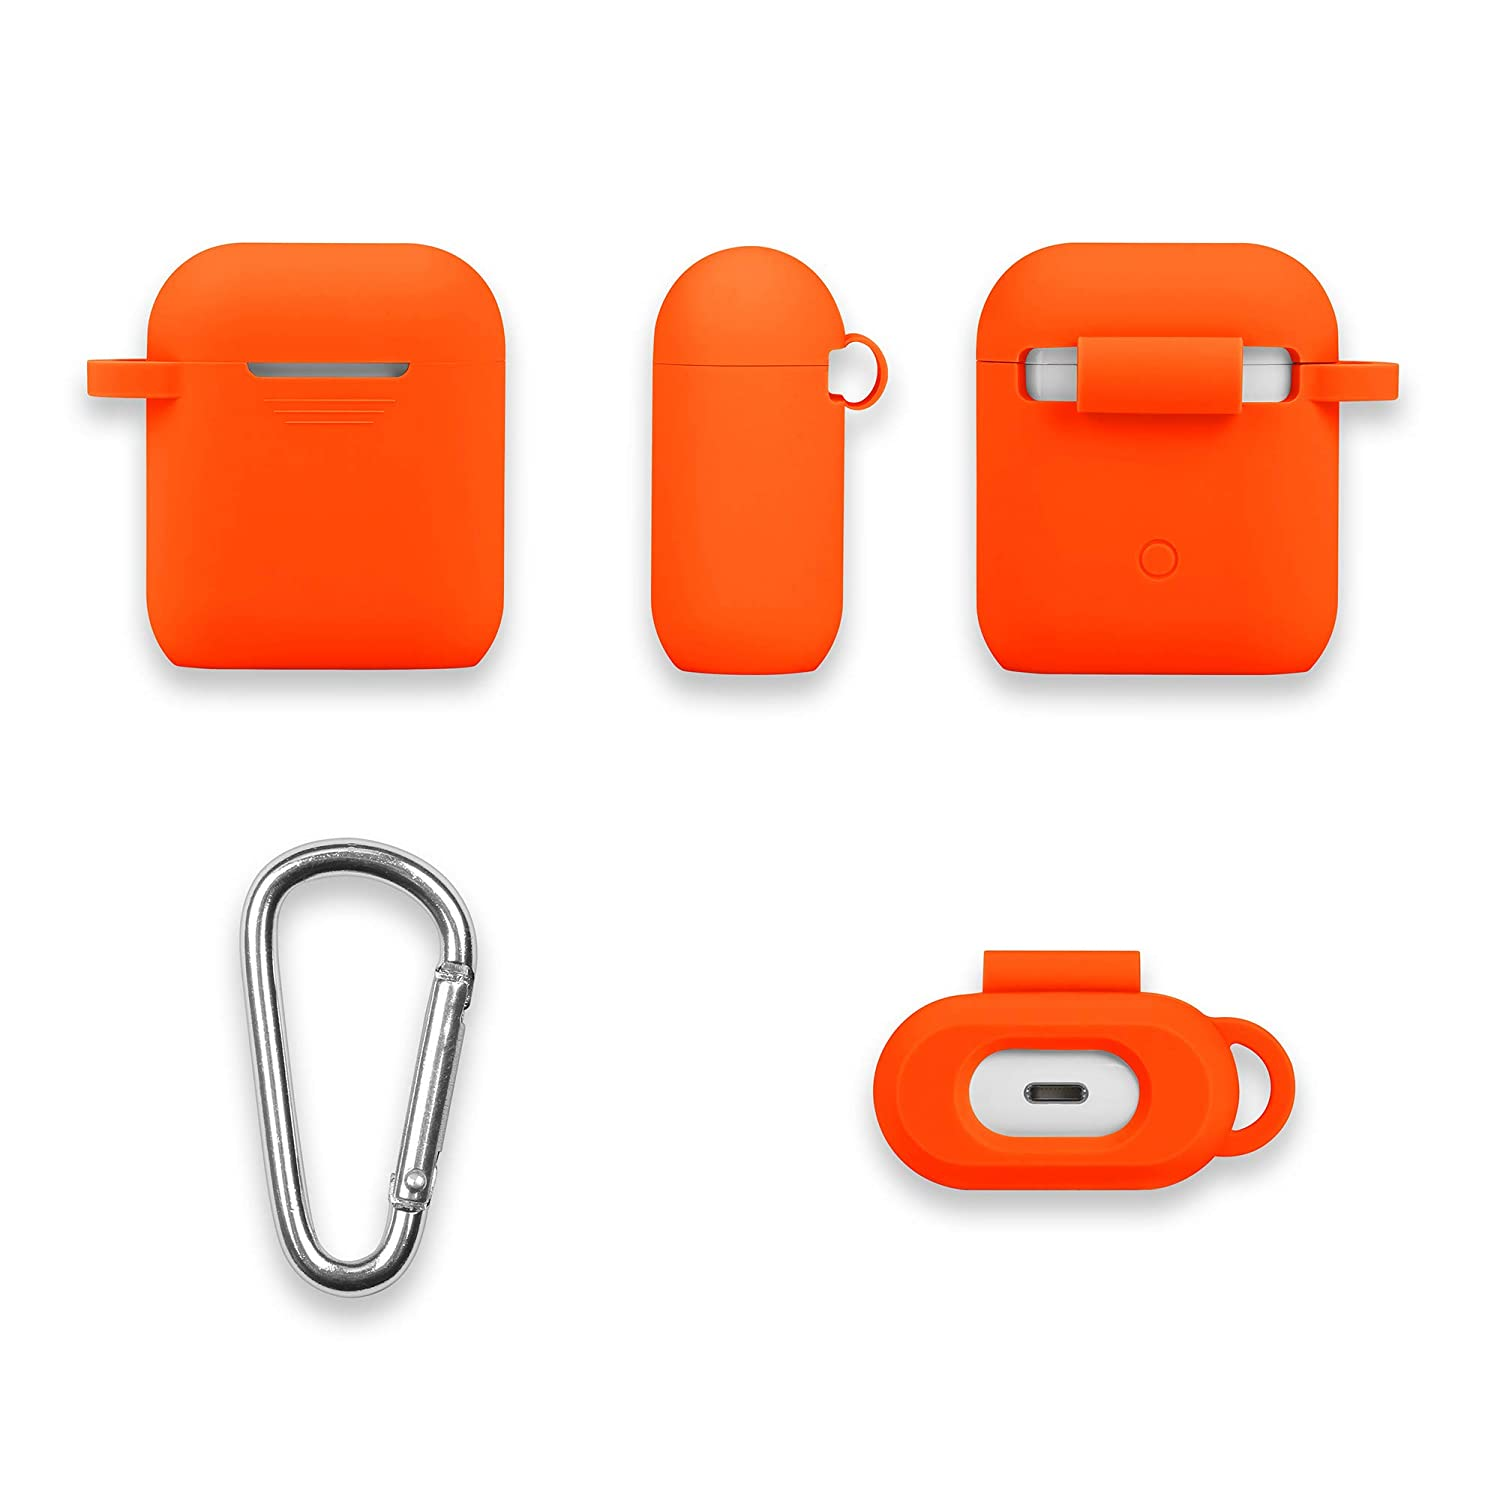 GMYLE Silicone Protective Shockproof Wireless Charging Airpods Earbuds Case Cover Skin with Keychain Set Compatible for Apple AirPods 1 /& 2 AirPods Case Sky Blue